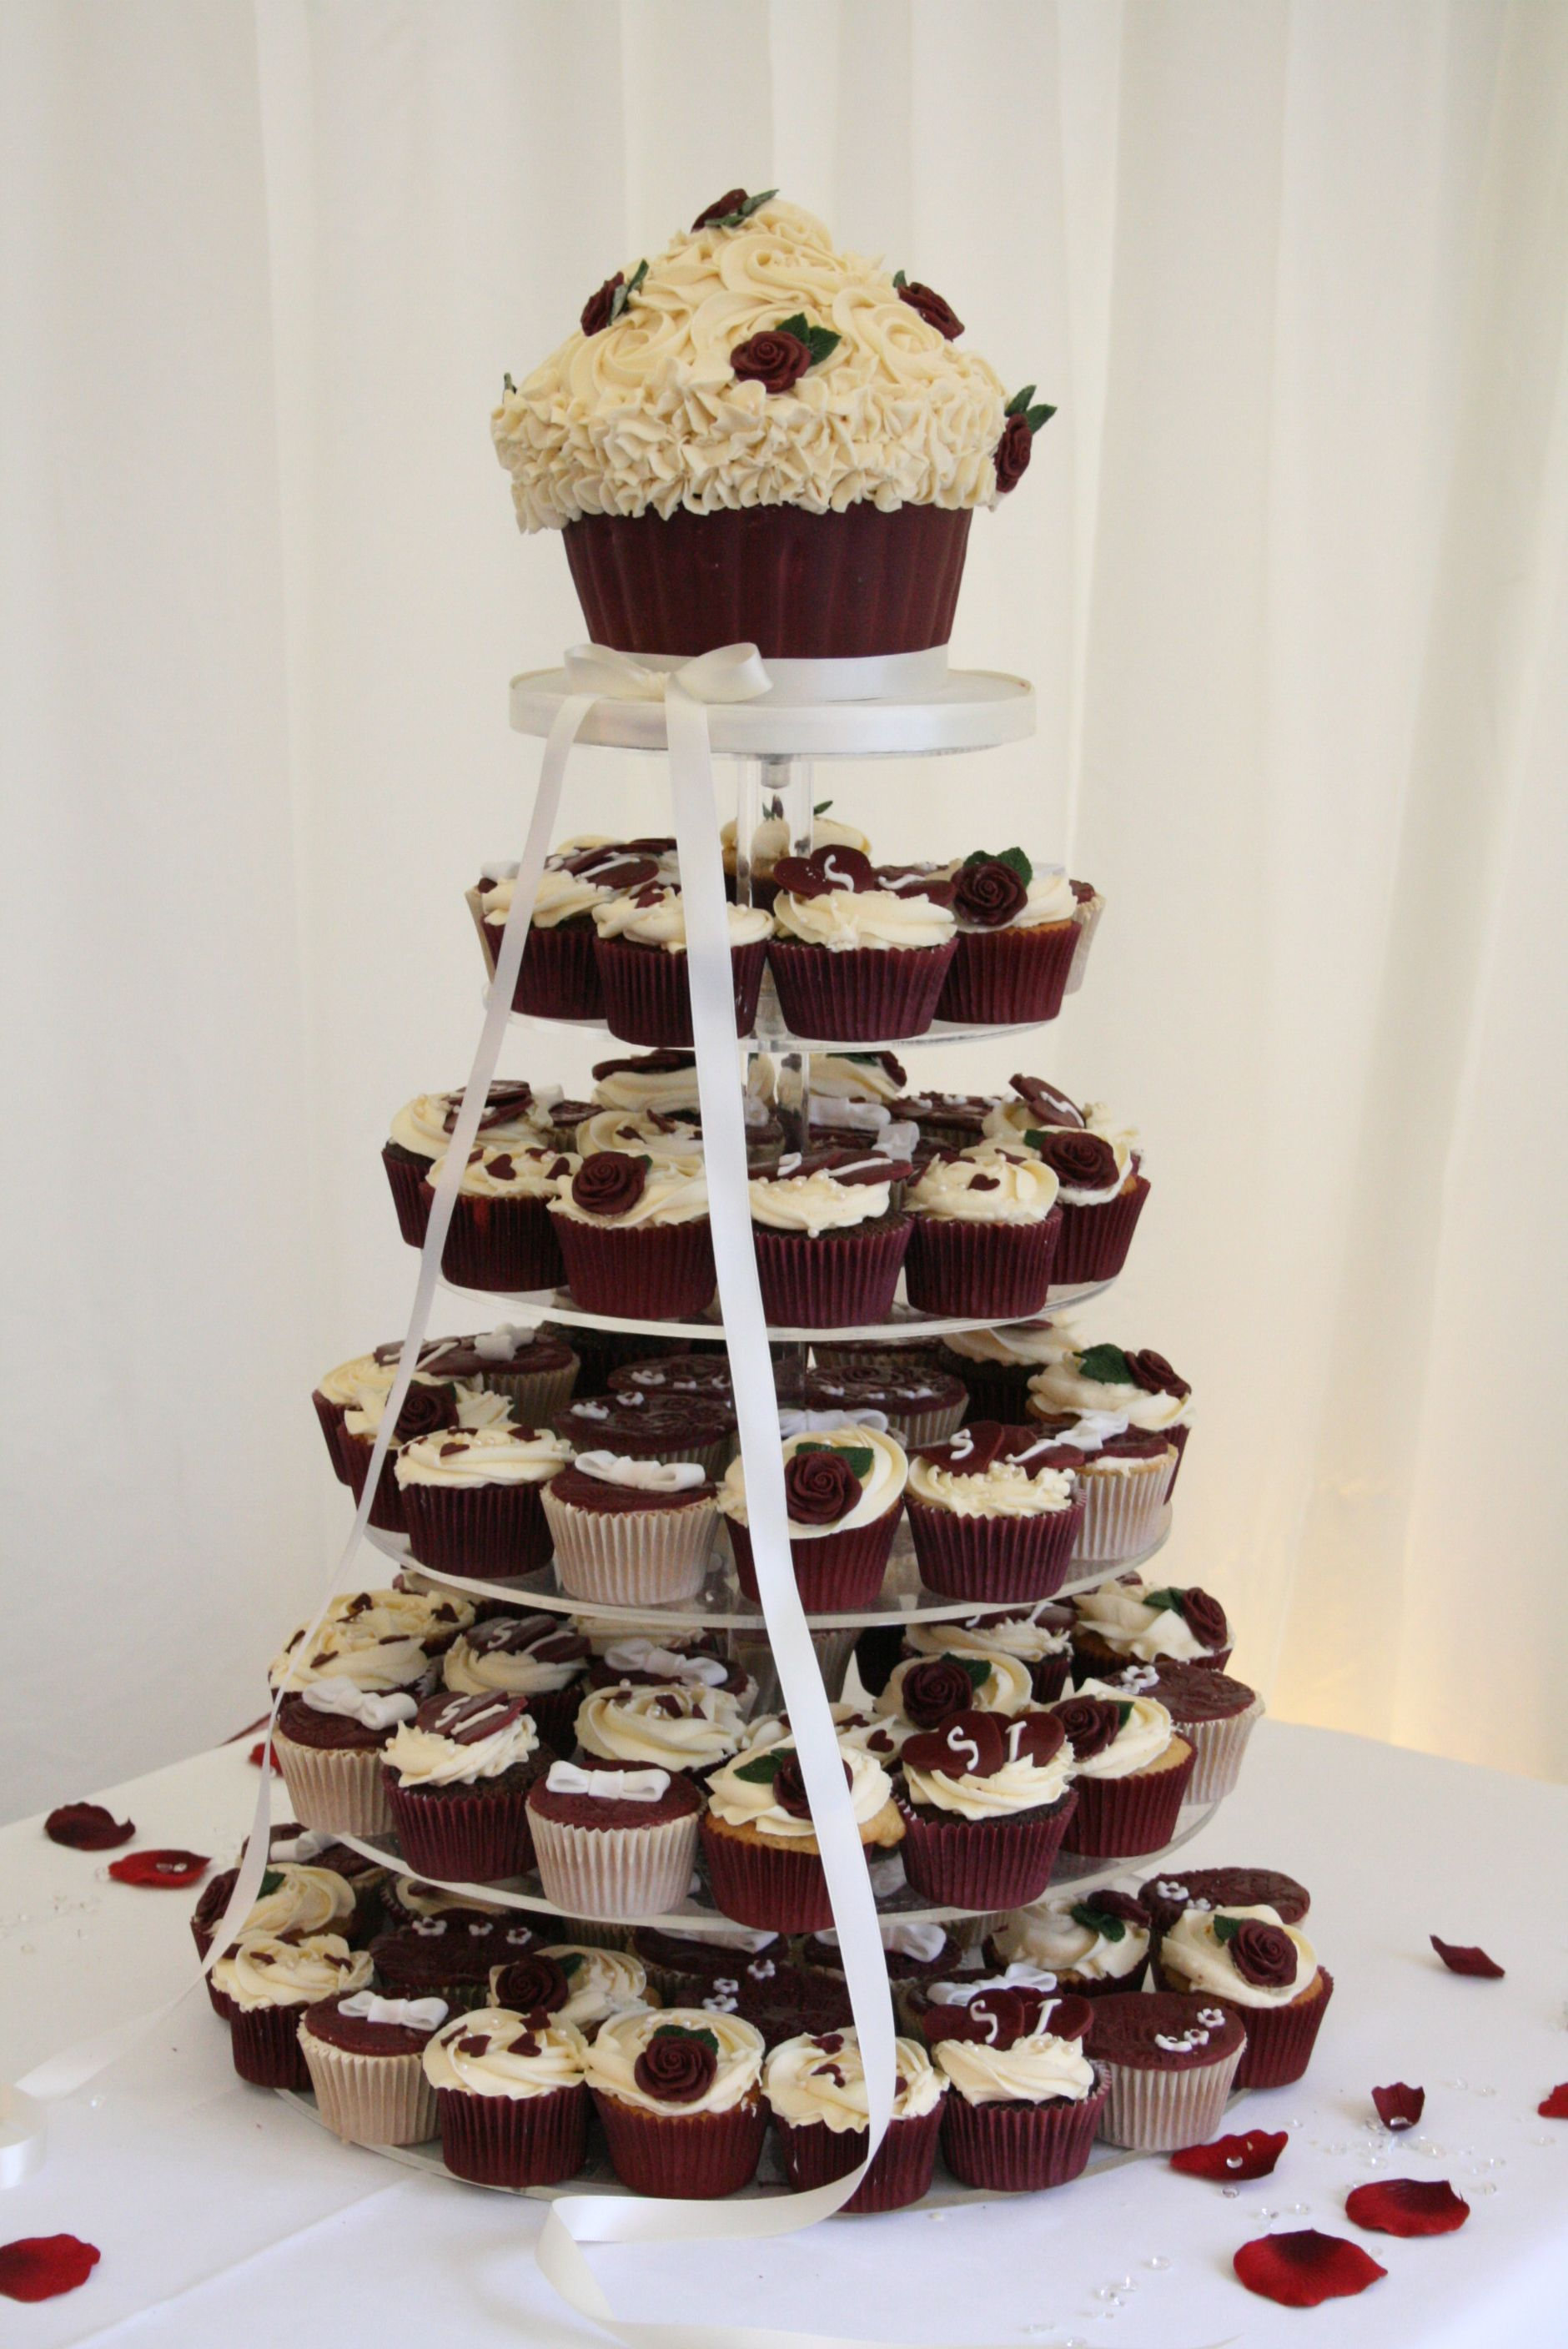 Halloween wedding cakes with cupcakes on tiers